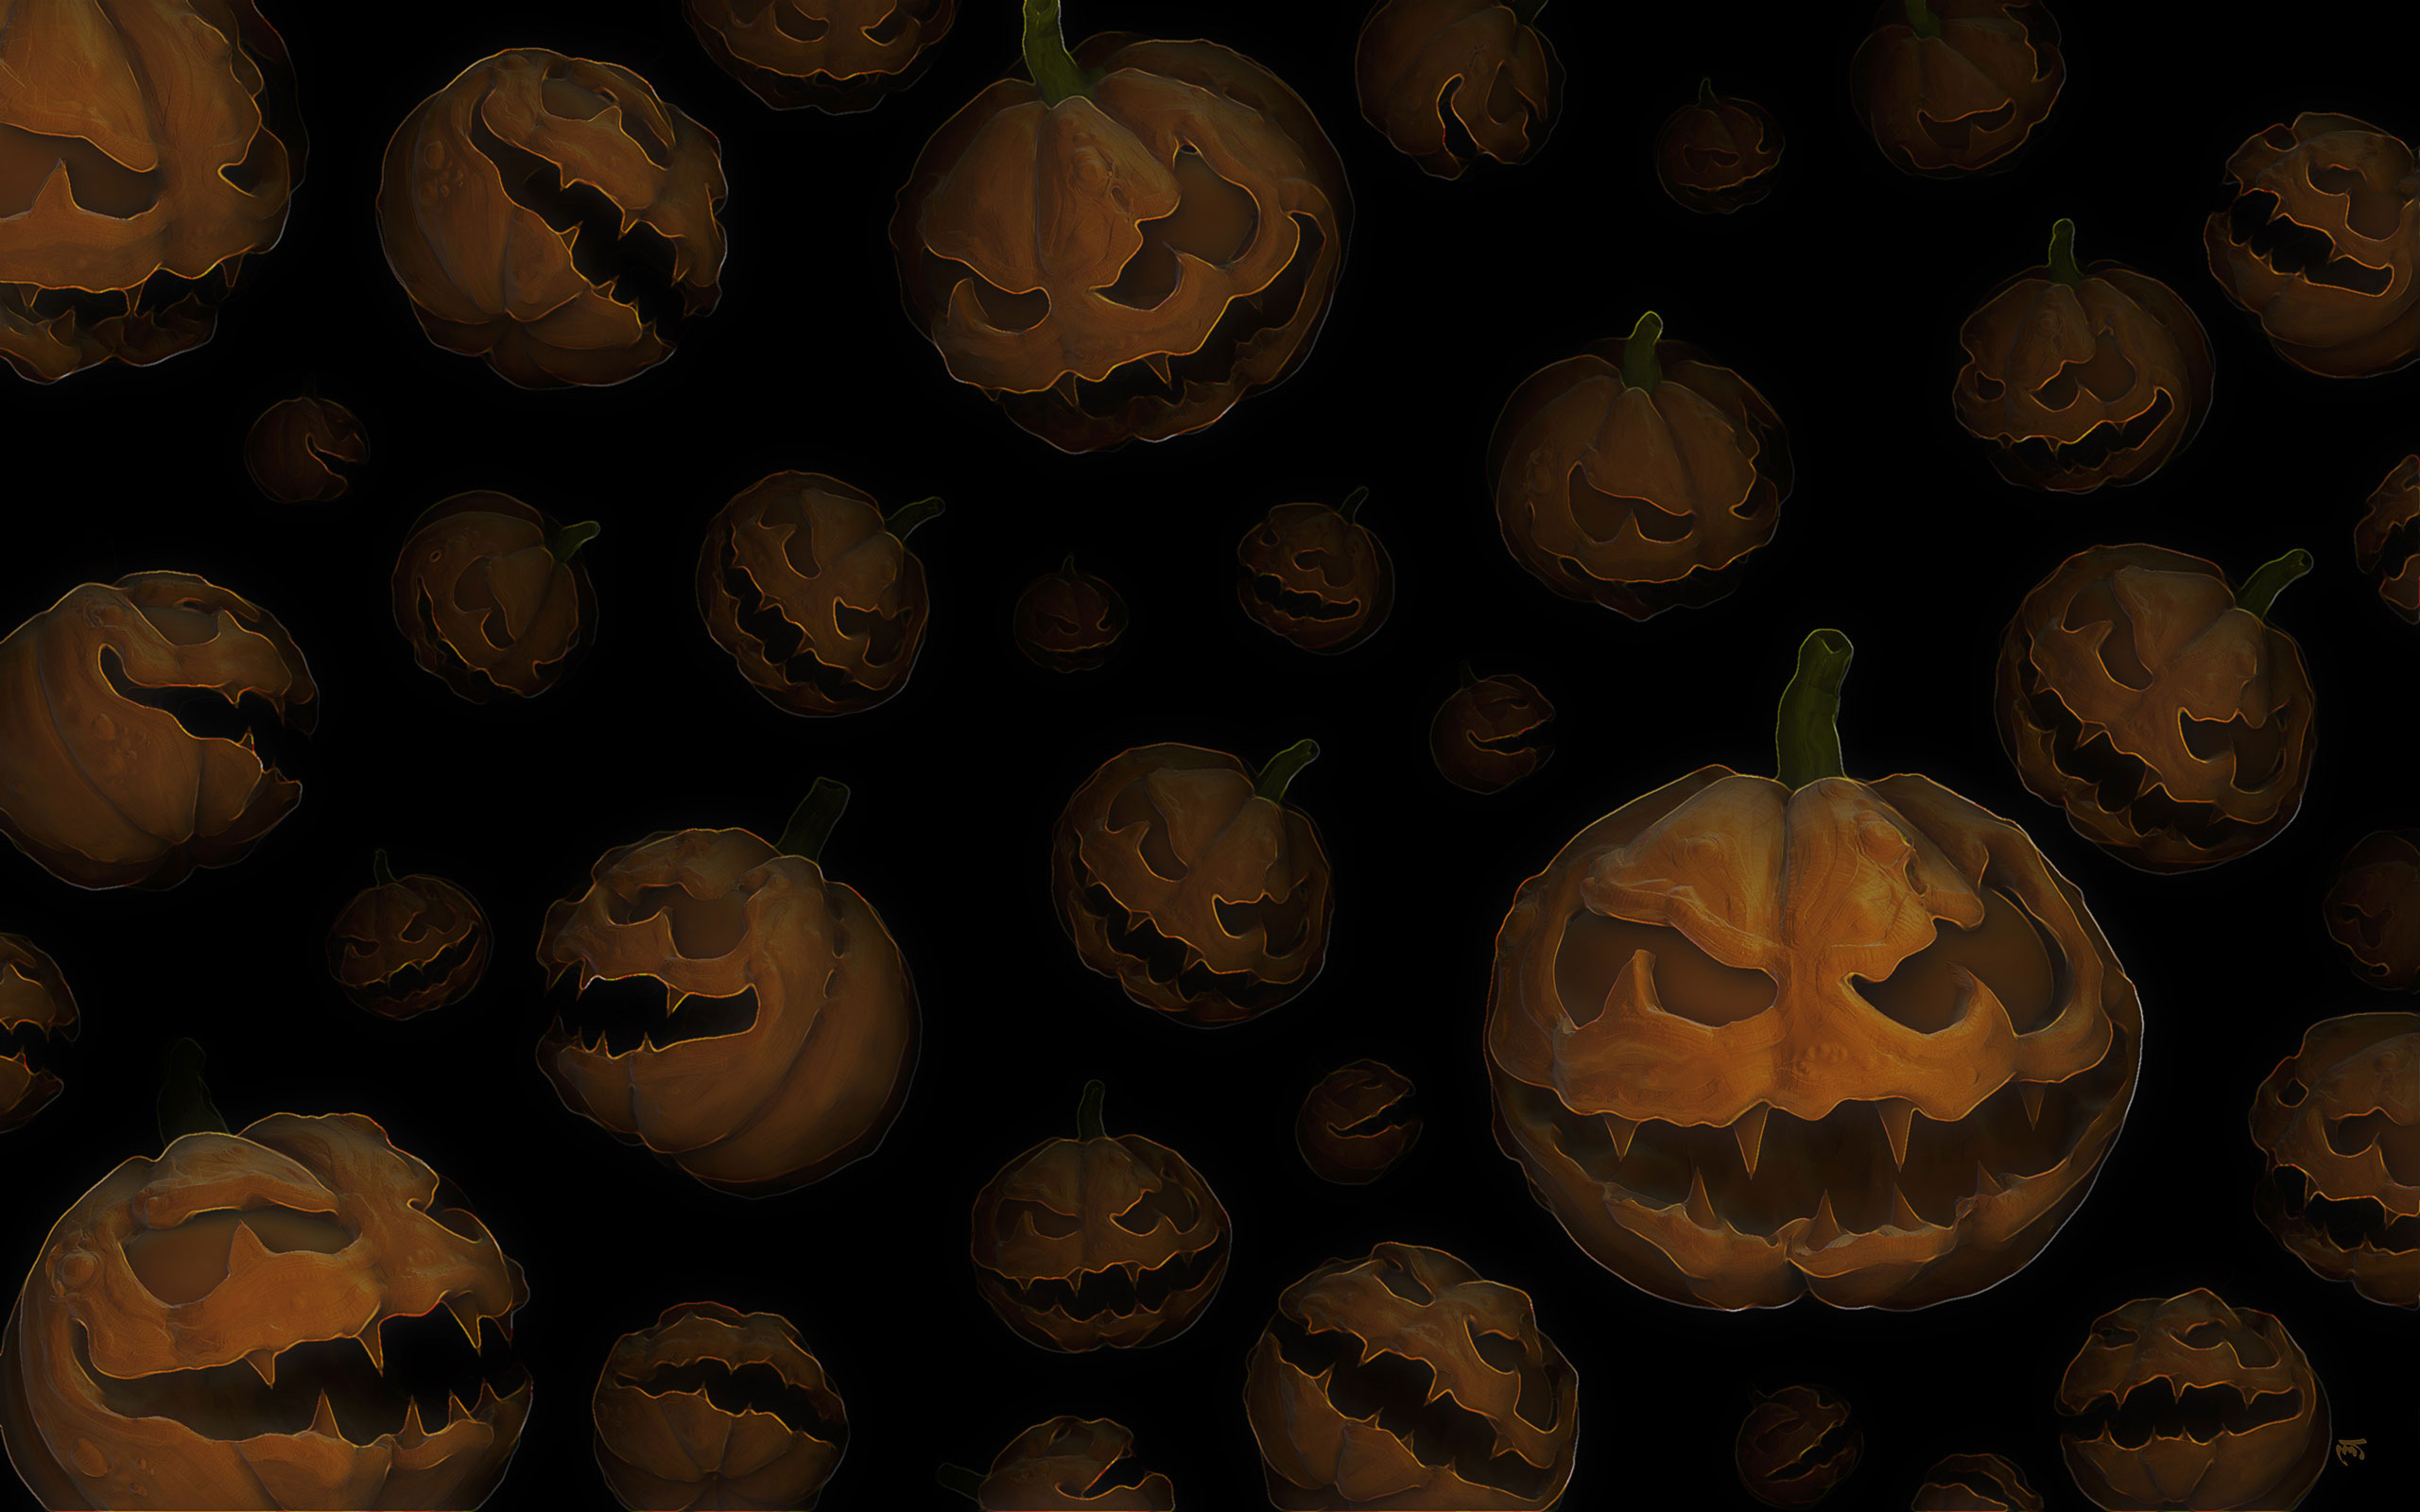 Halloween Pumpkins Wallpaper 65465 2560x1600px 2560x1600